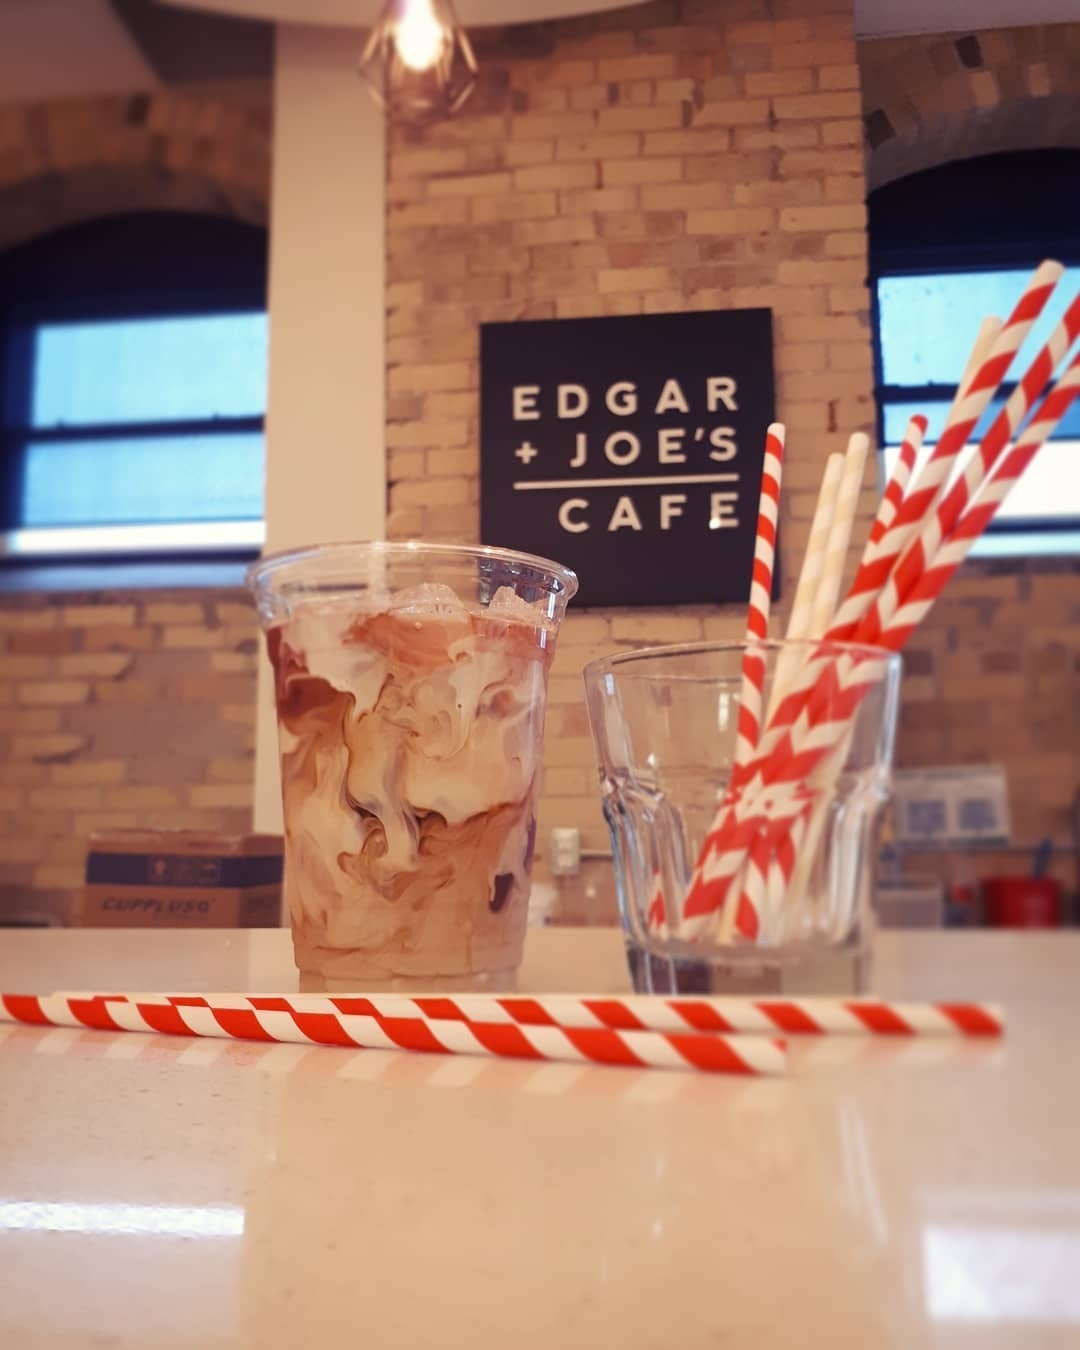 Edgar and Joe's joined the #stopsucking challenge and moved to paper straws this summer. Photo via Instagram / @edgarandjoes